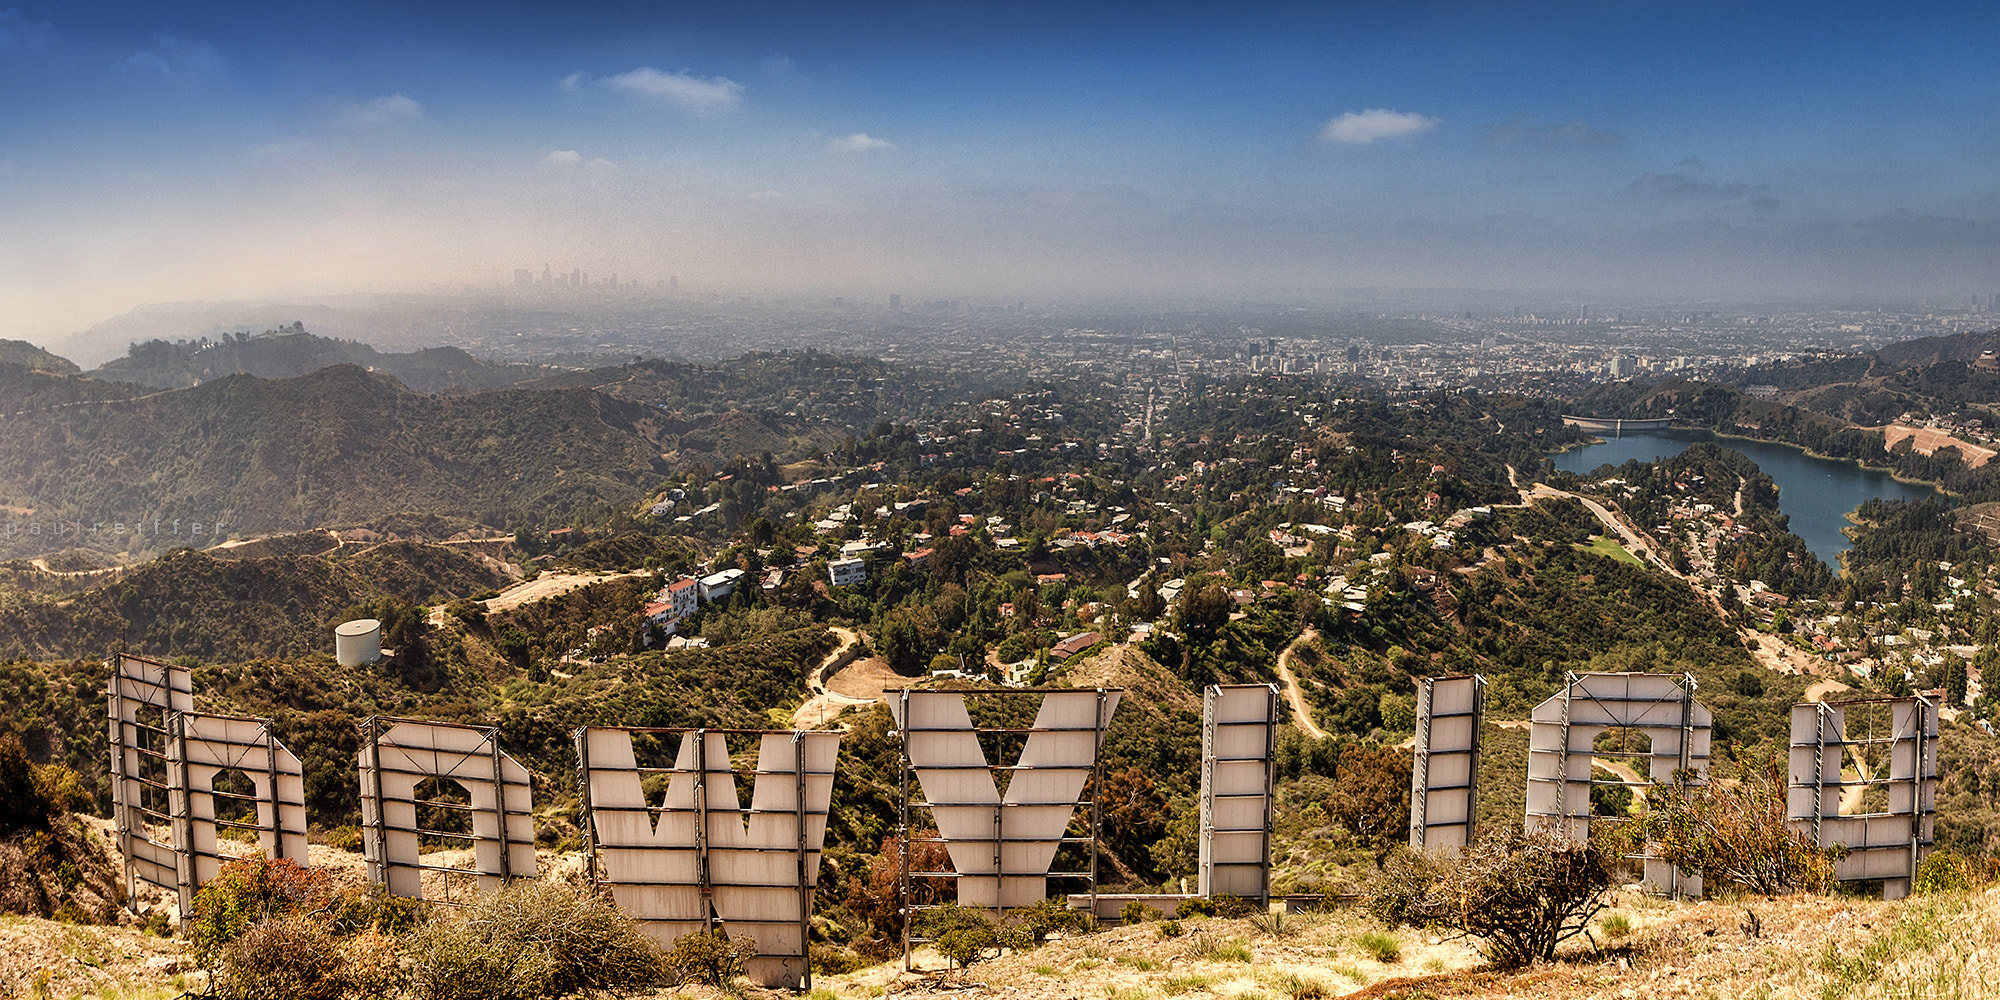 Photograph Hollywood Sign Skyline - Reverse Landscape View by Paul Reiffer on 500px